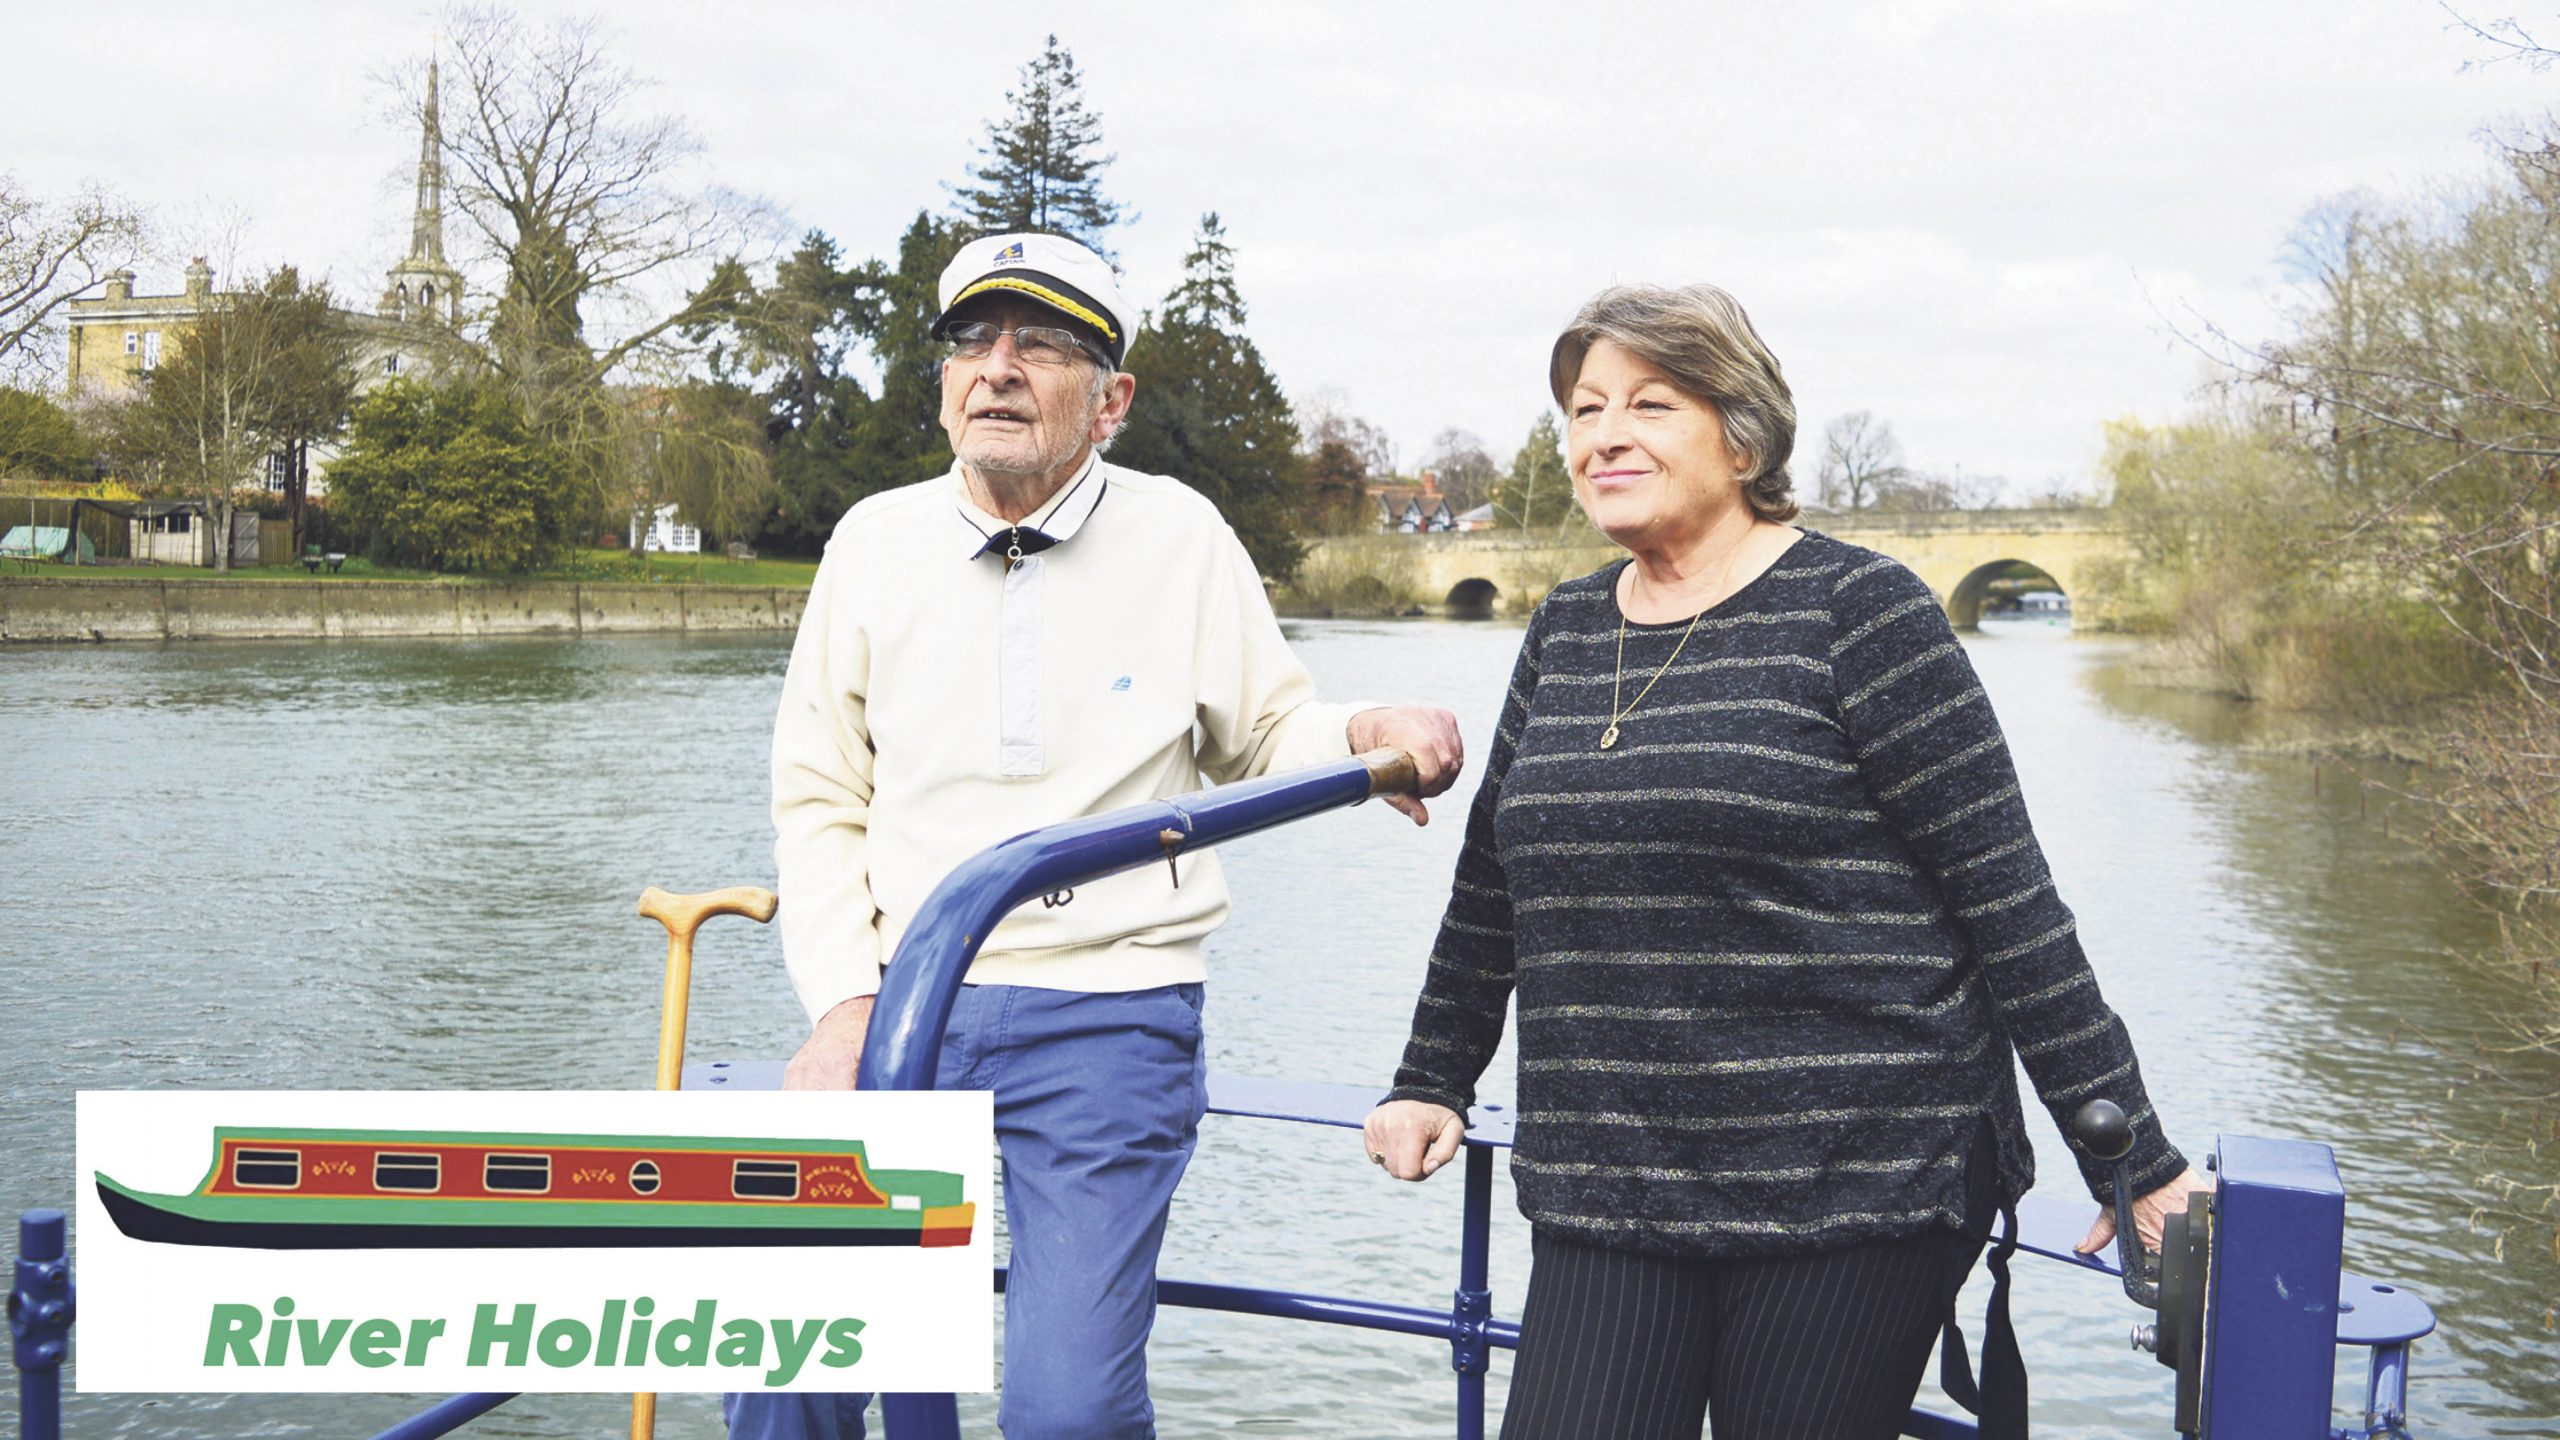 Win a narrowboat holiday for your family Worth £650!